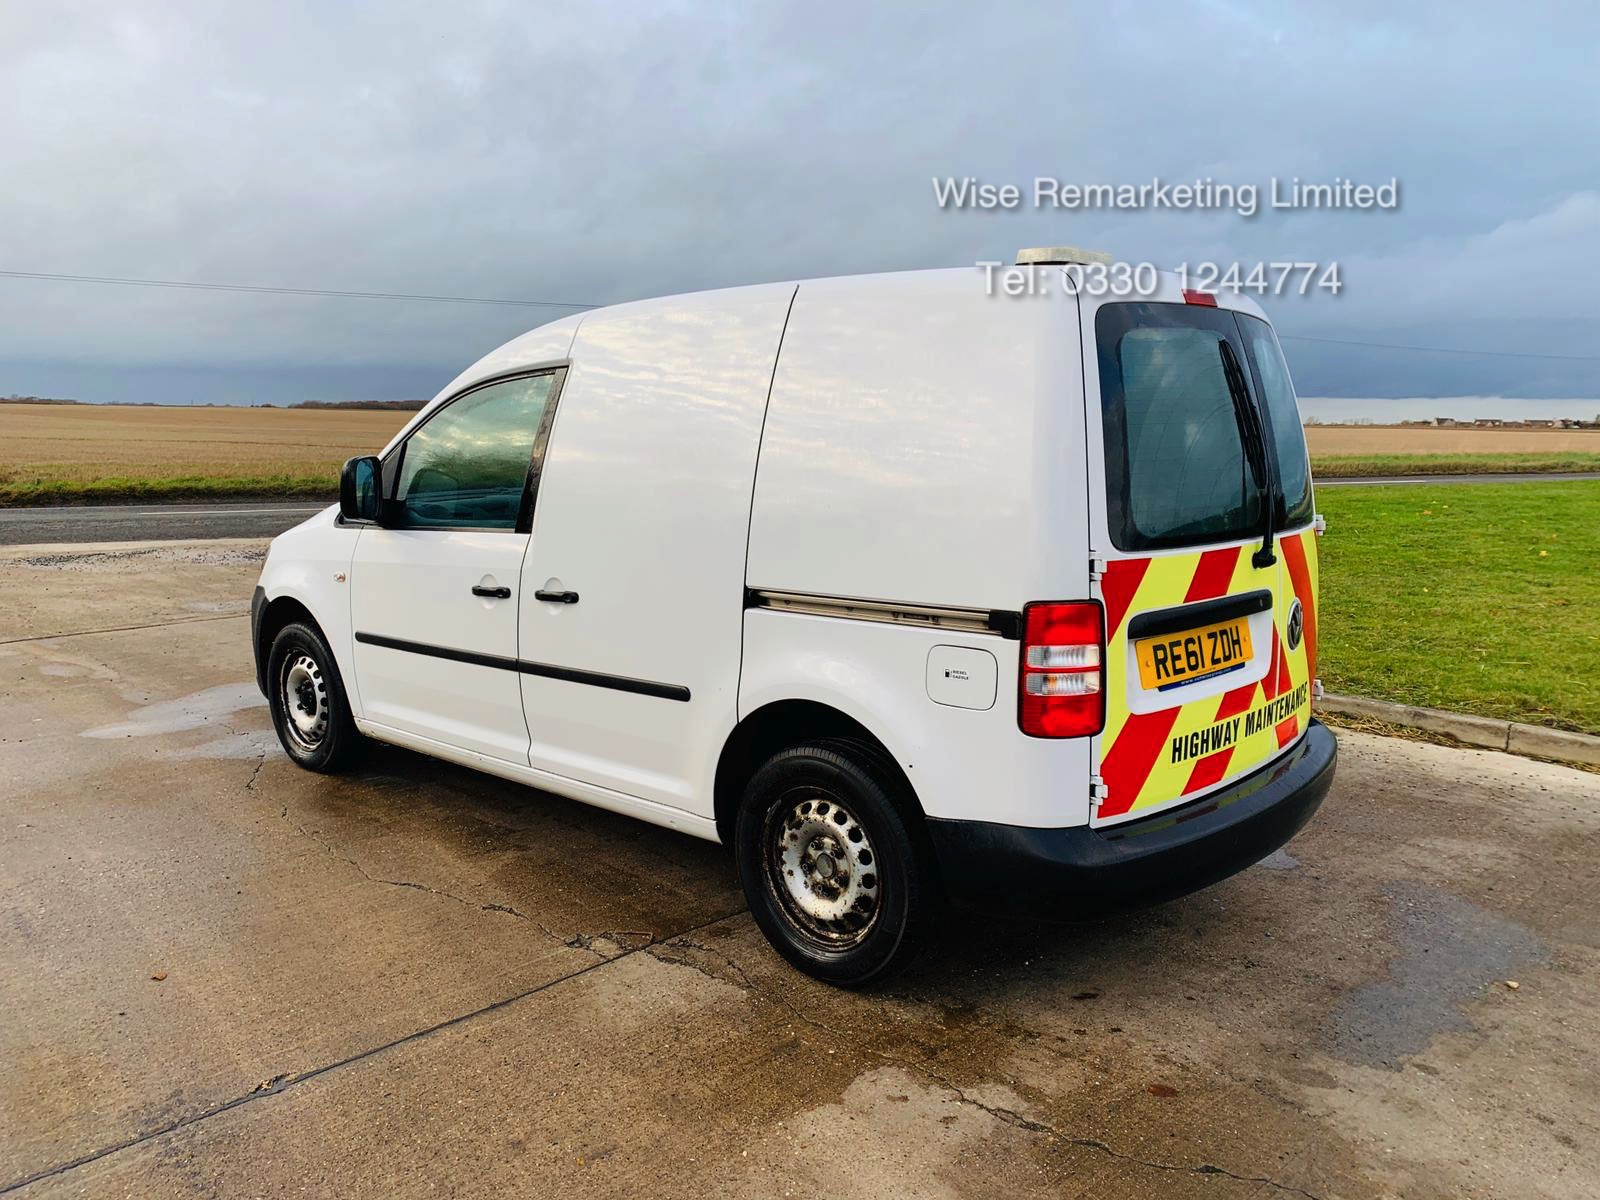 Volkswagen Caddy C20 1.6 TDI - 2012 Model - 1 Keeper From New - Side Loading Door - Ply Lined - Image 7 of 16